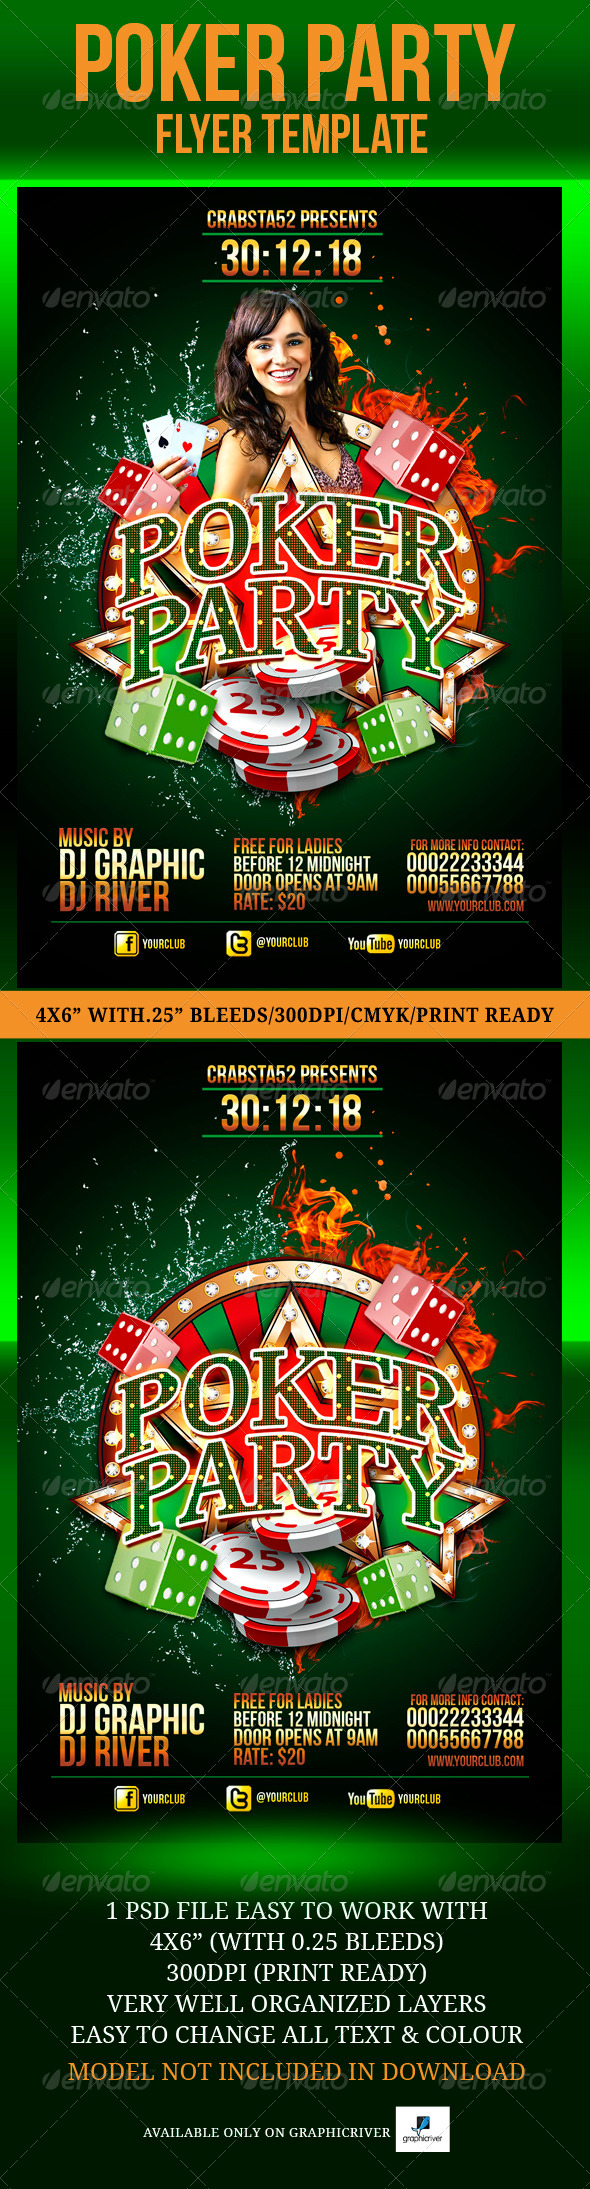 GraphicRiver Poker Party Flyer Template 4657493